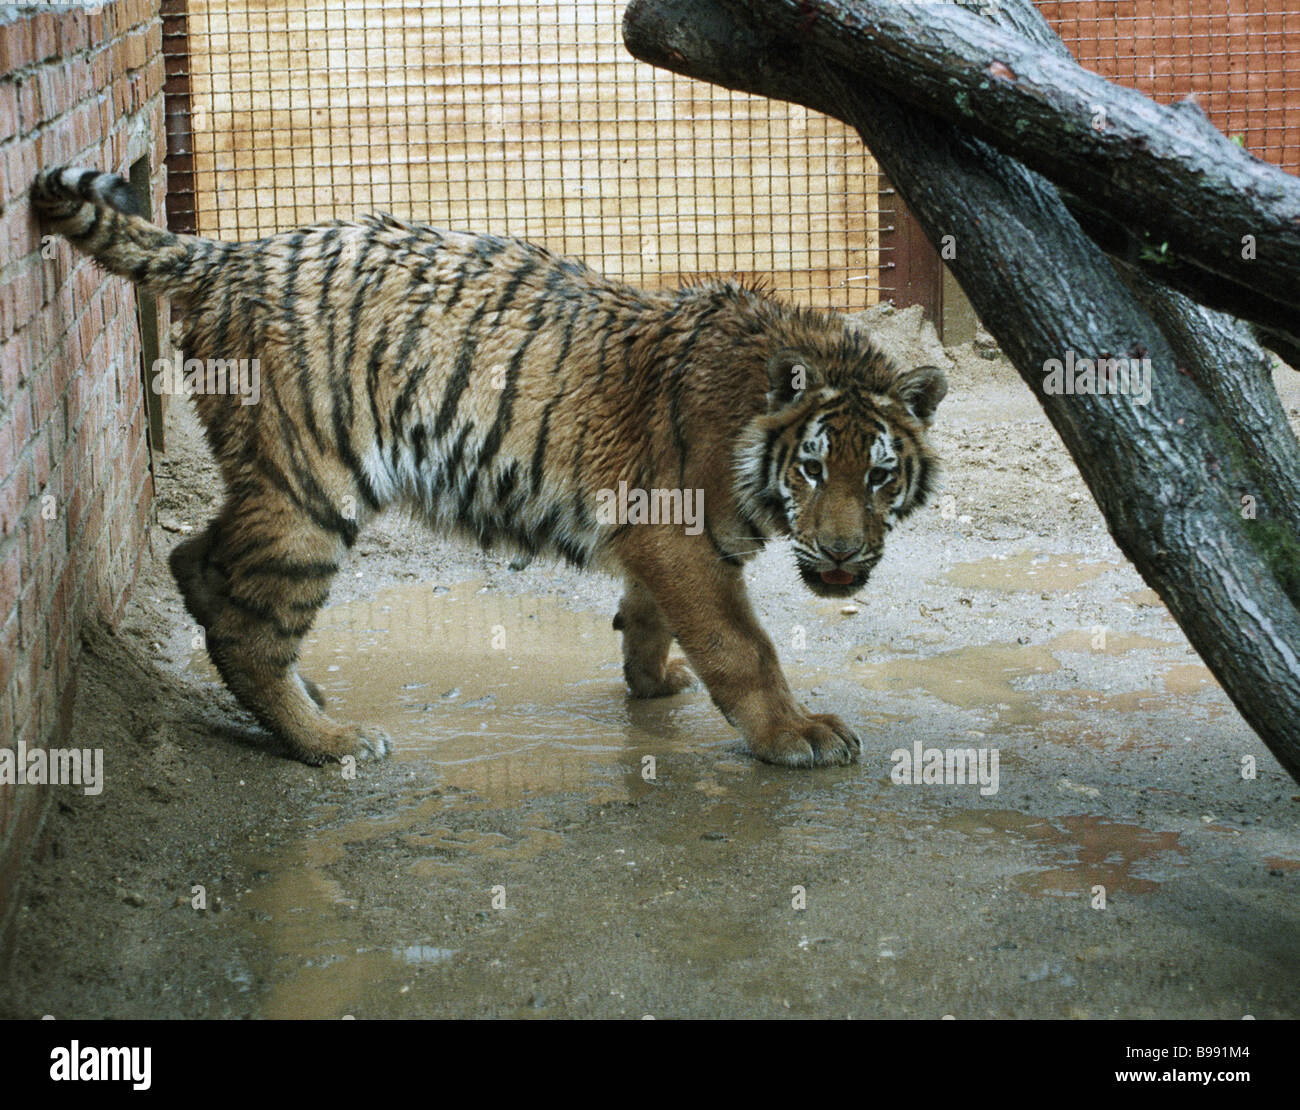 A one year old tiger cub confiscated from the photographers in Stary Arbat street recovering in the Moscow zoo nursery - Stock Image